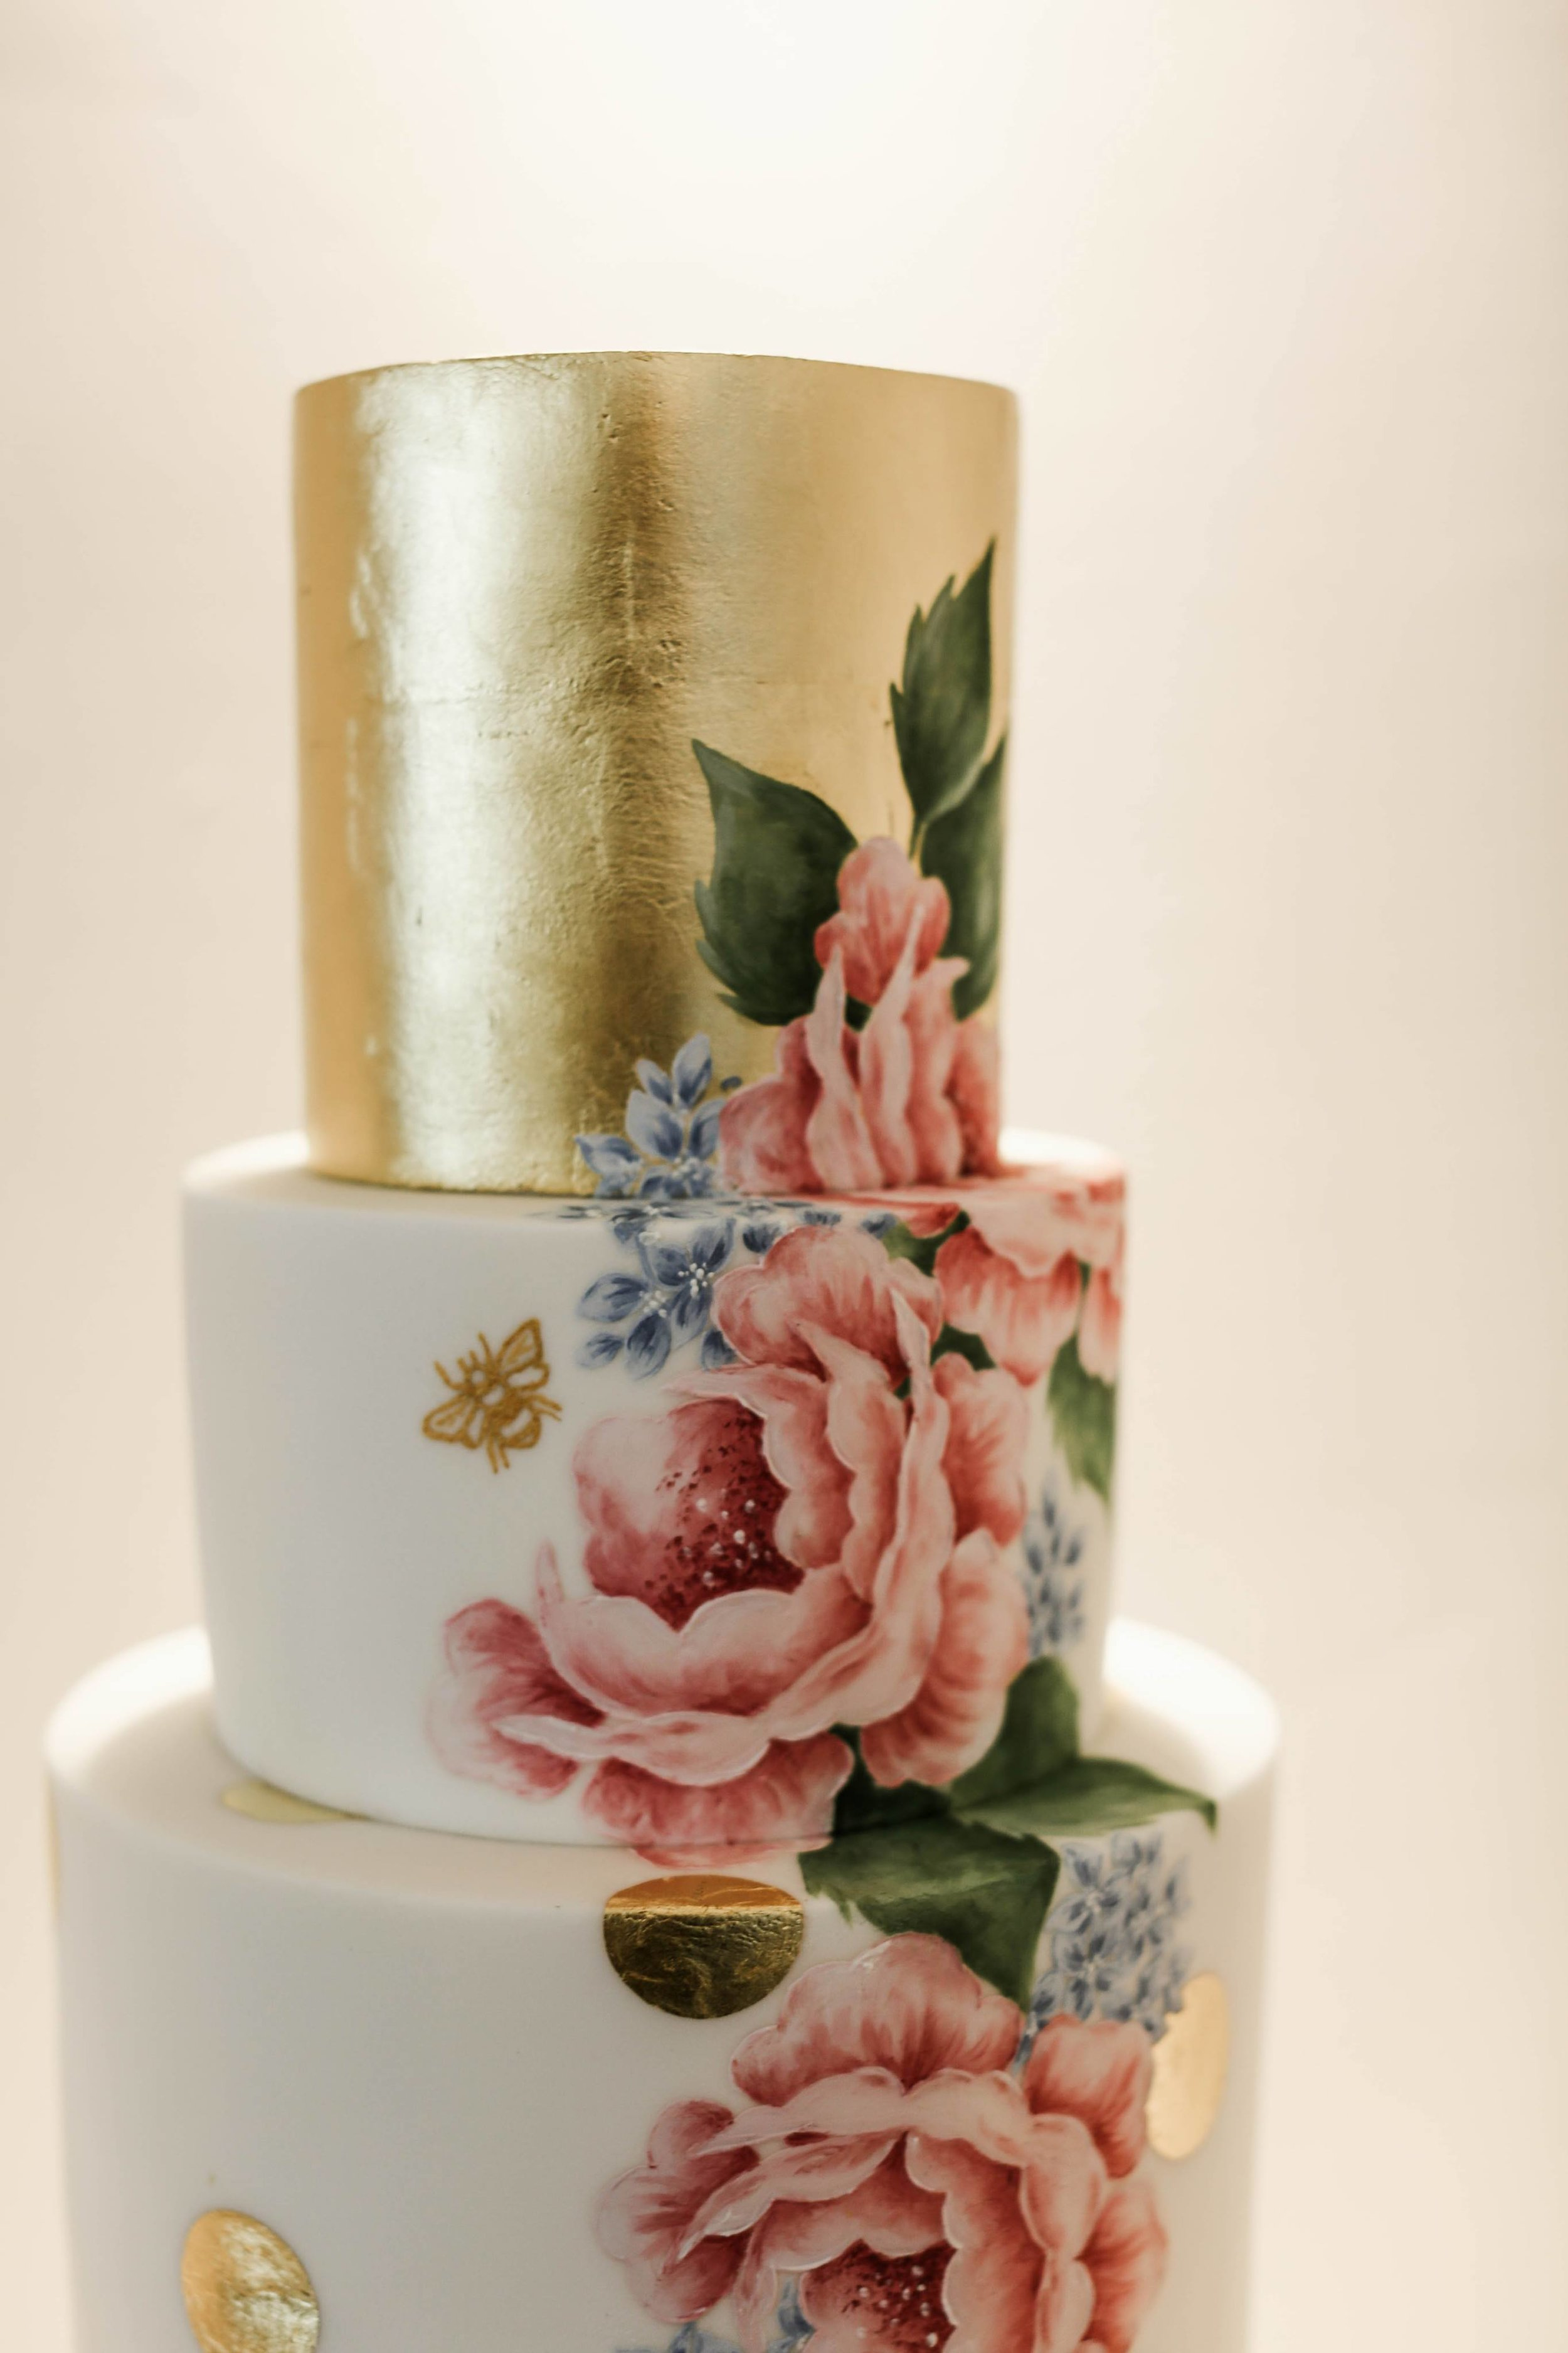 ROSES AND GOLD POLKA DOTTY  A 3 tier cake with gold leaf covered top tier and gold polka dots with a hand painted floral design